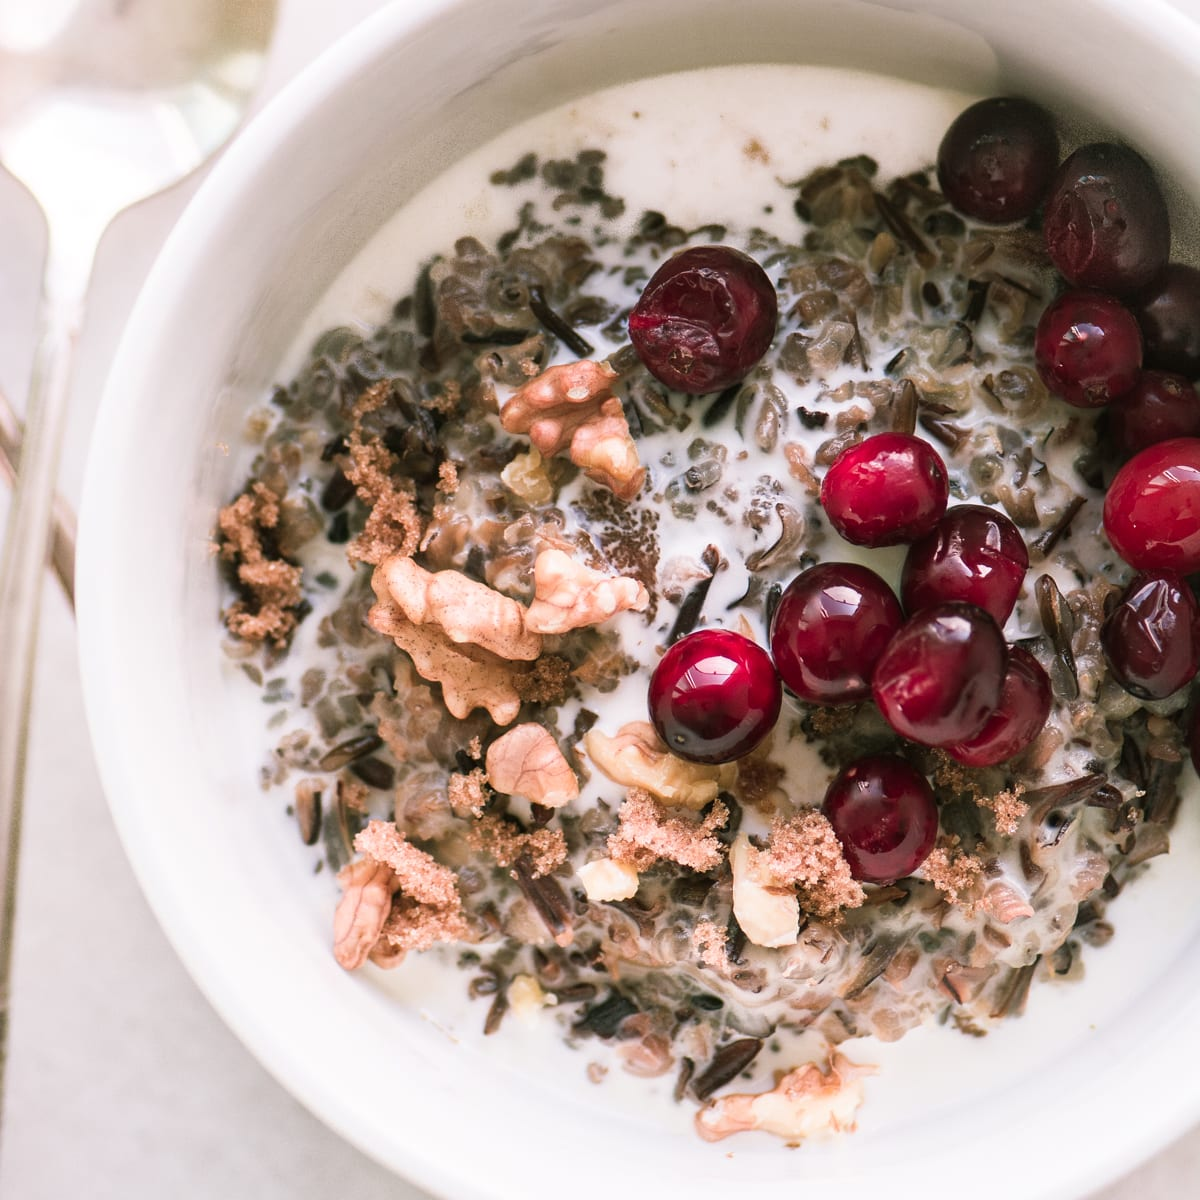 A bowl of wild rice porridge with cranberries and walnuts